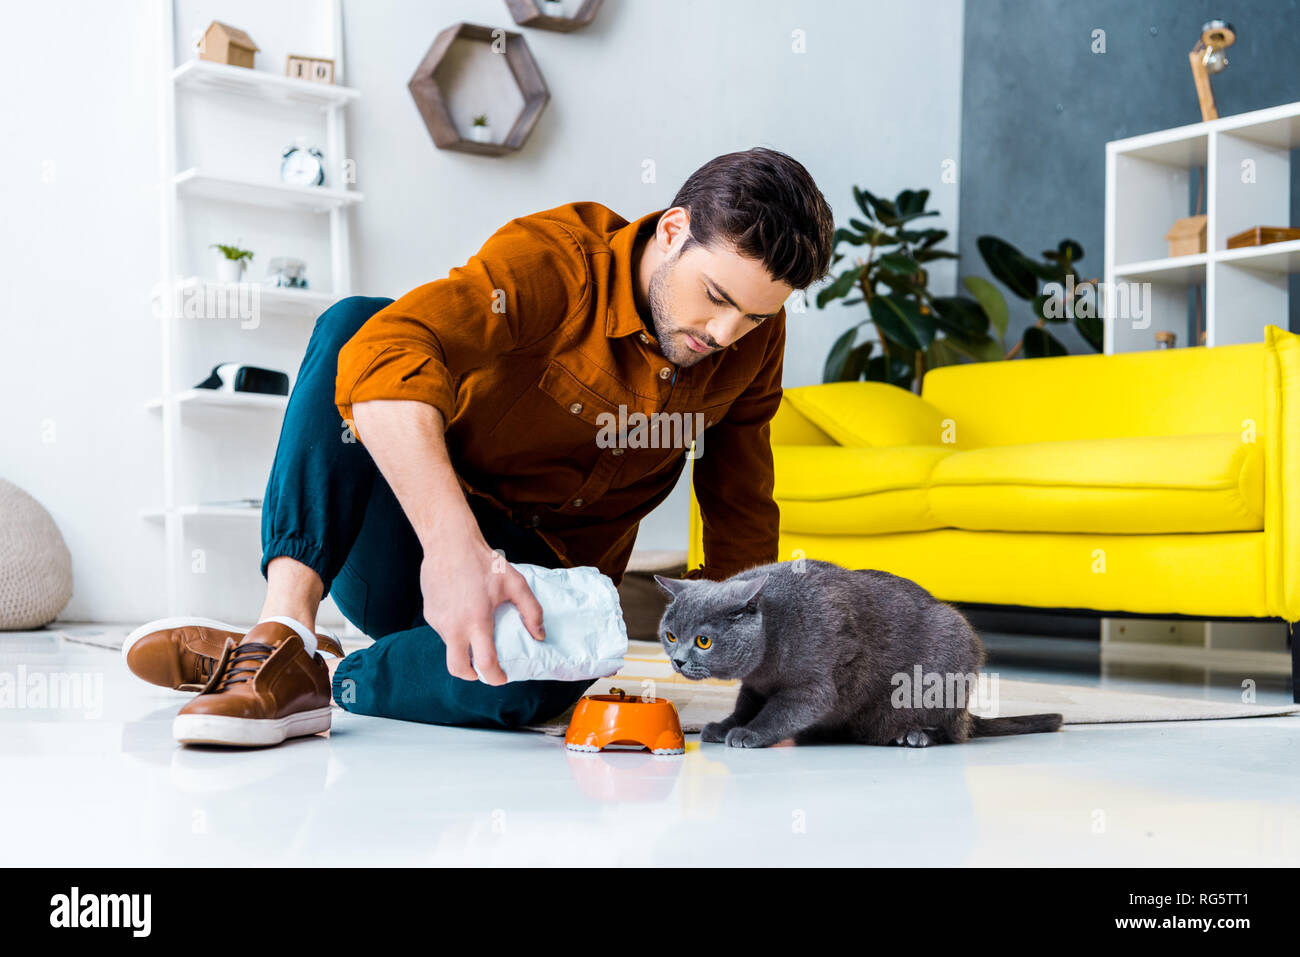 Feed The Cat Bowl People Stock Photos & Feed The Cat Bowl